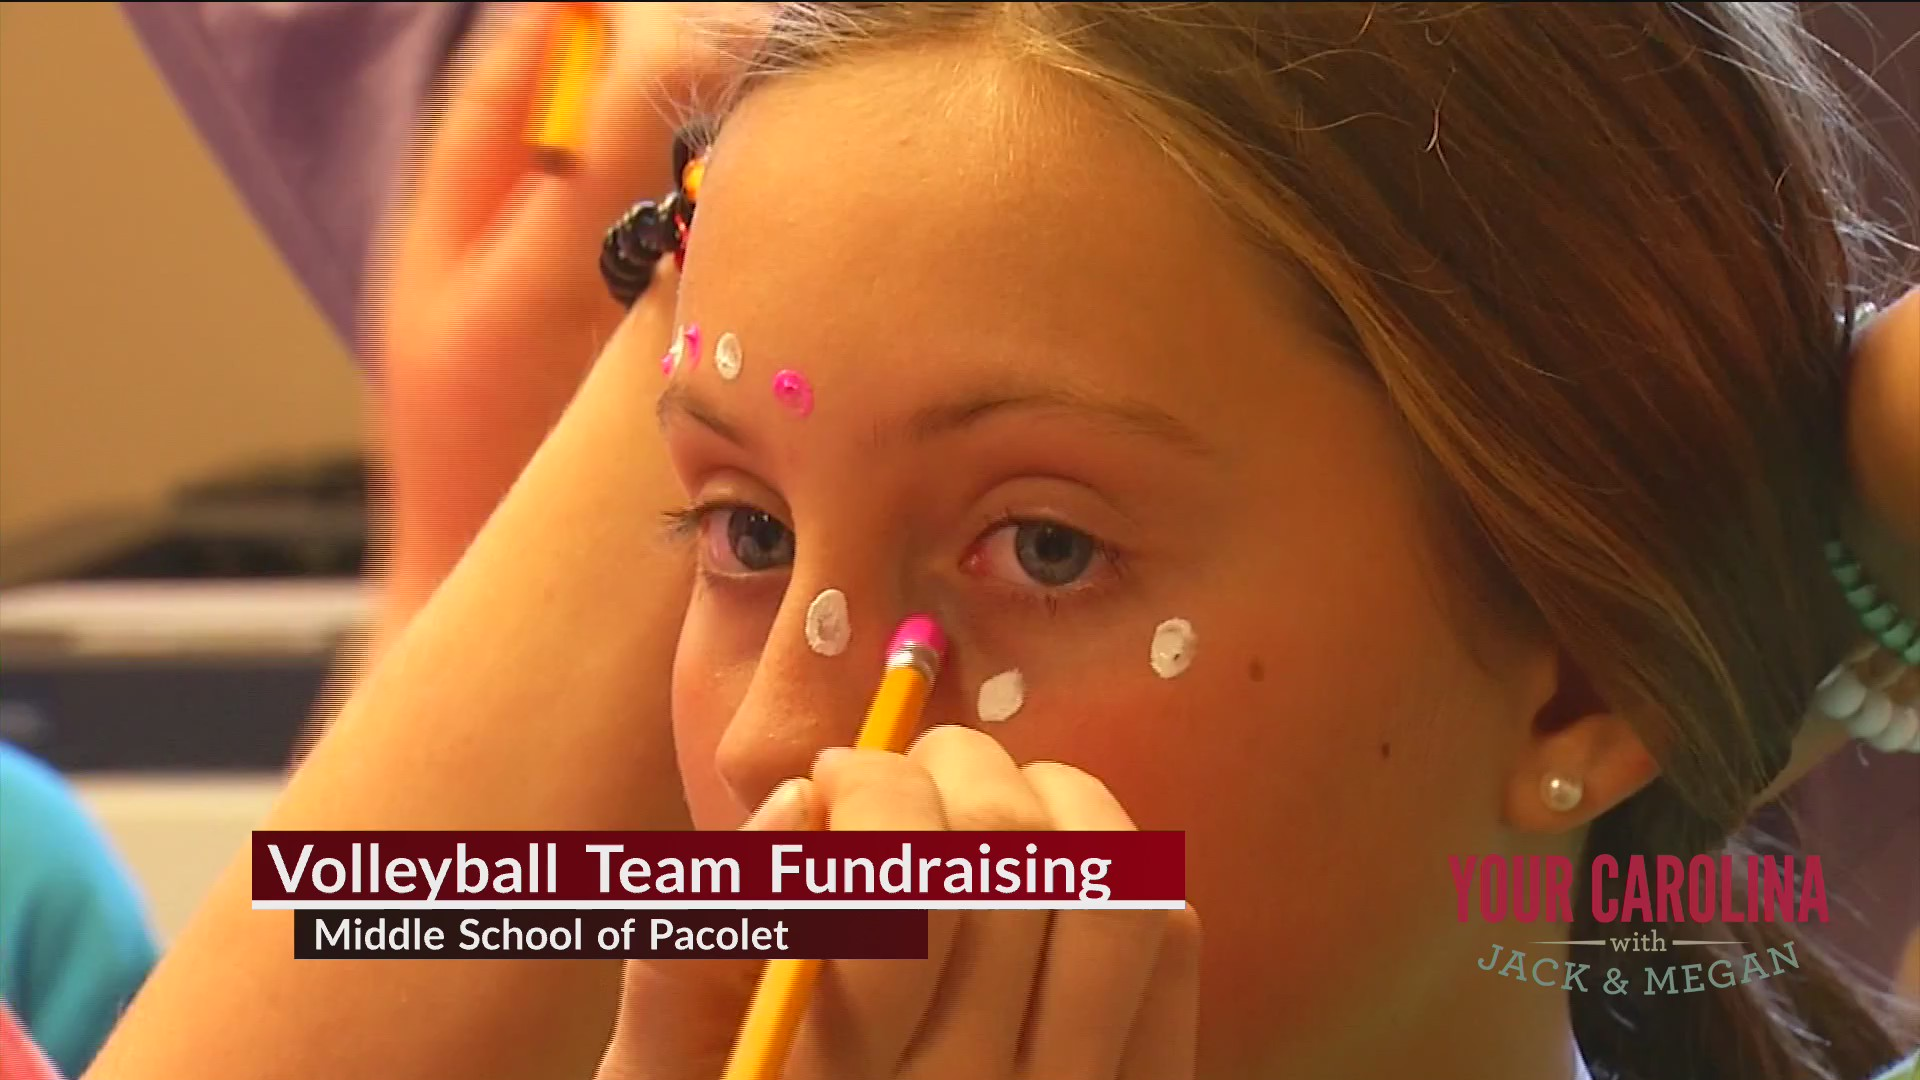 Good News - Volleyball Team Fundraising